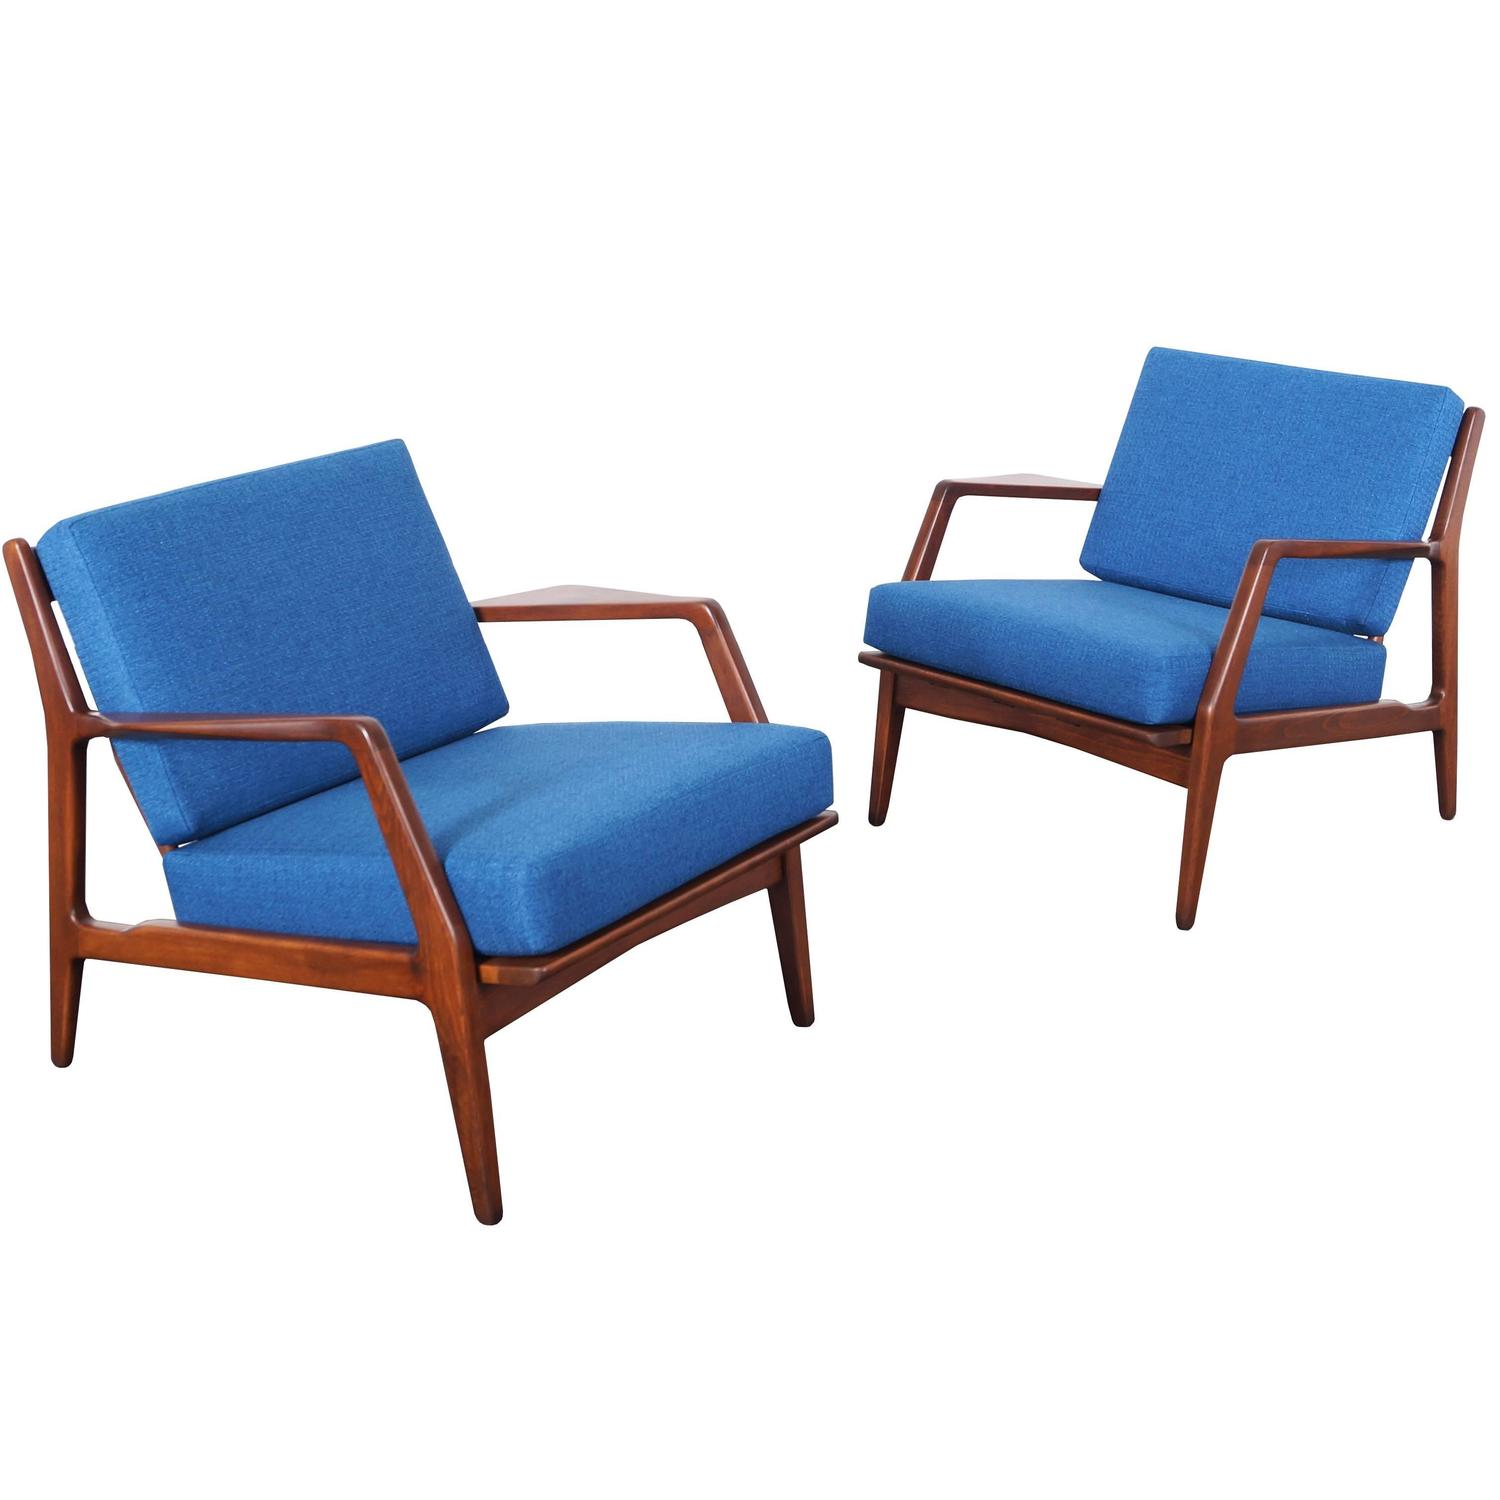 Inspirational mid century modern lounge chair for Contemporary seating chairs